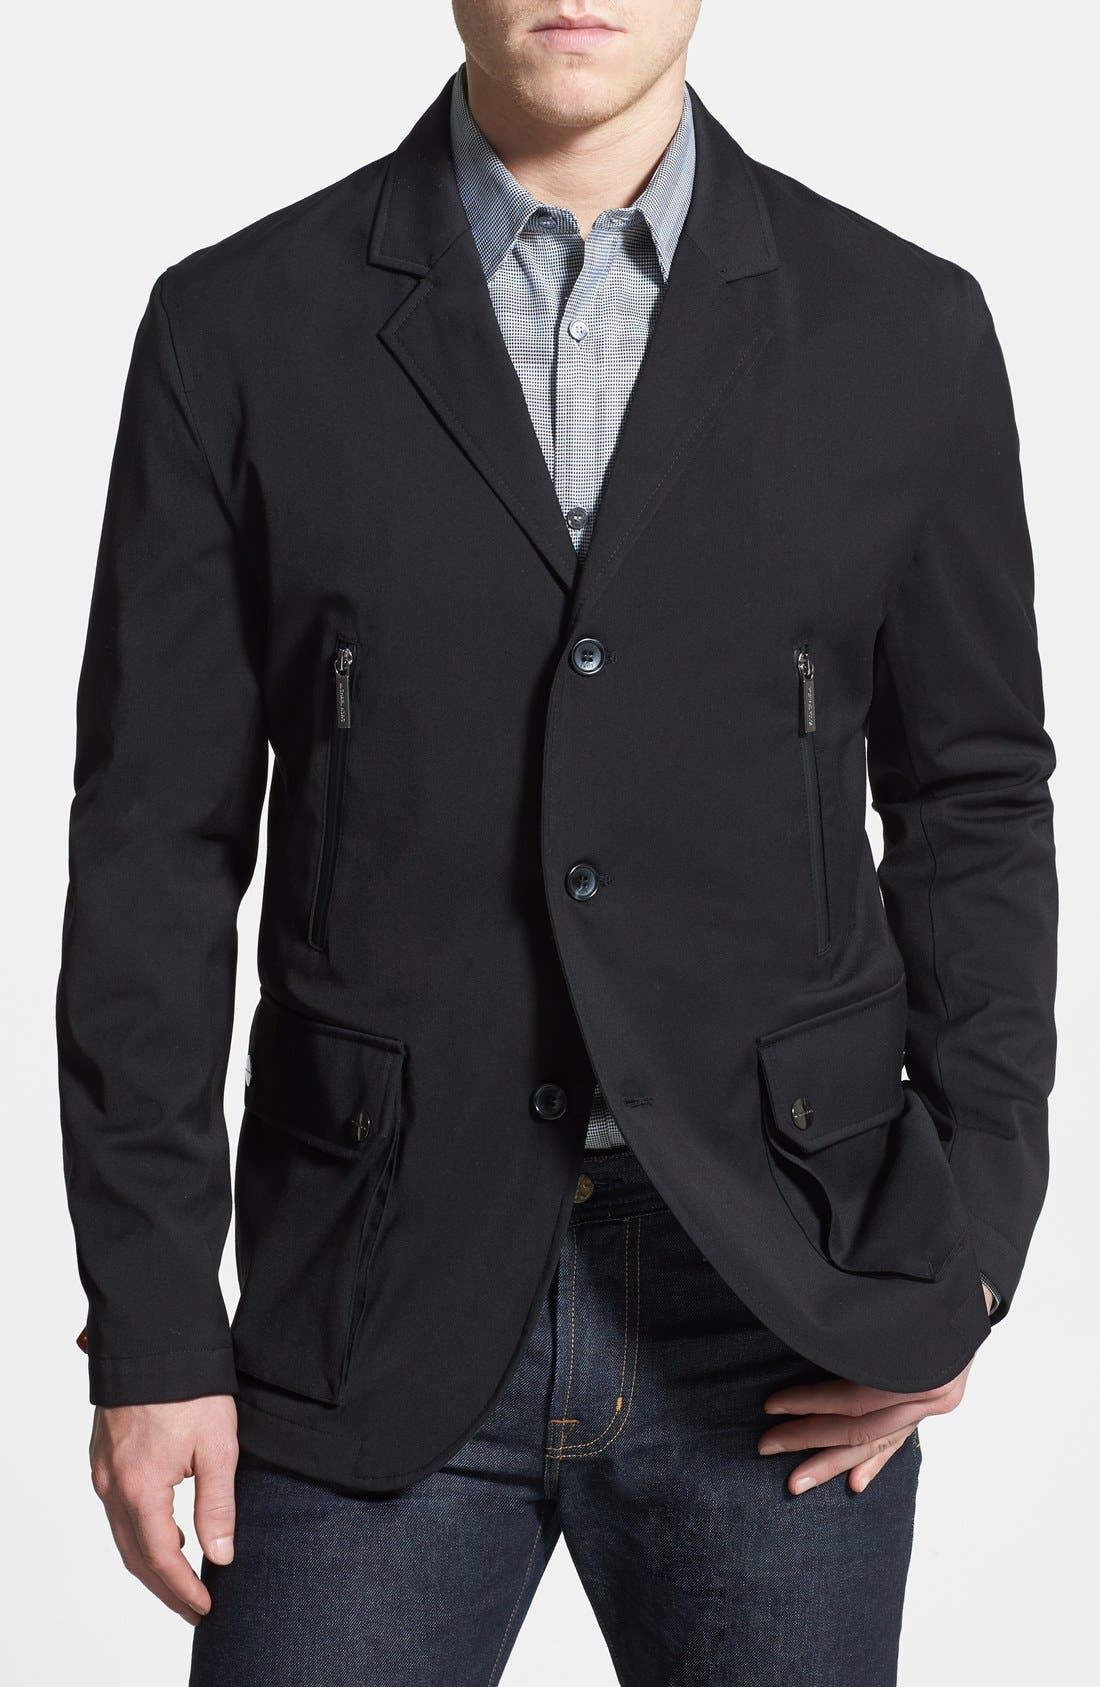 Main Image - Michael Kors Water Resistant Travel Sportcoat